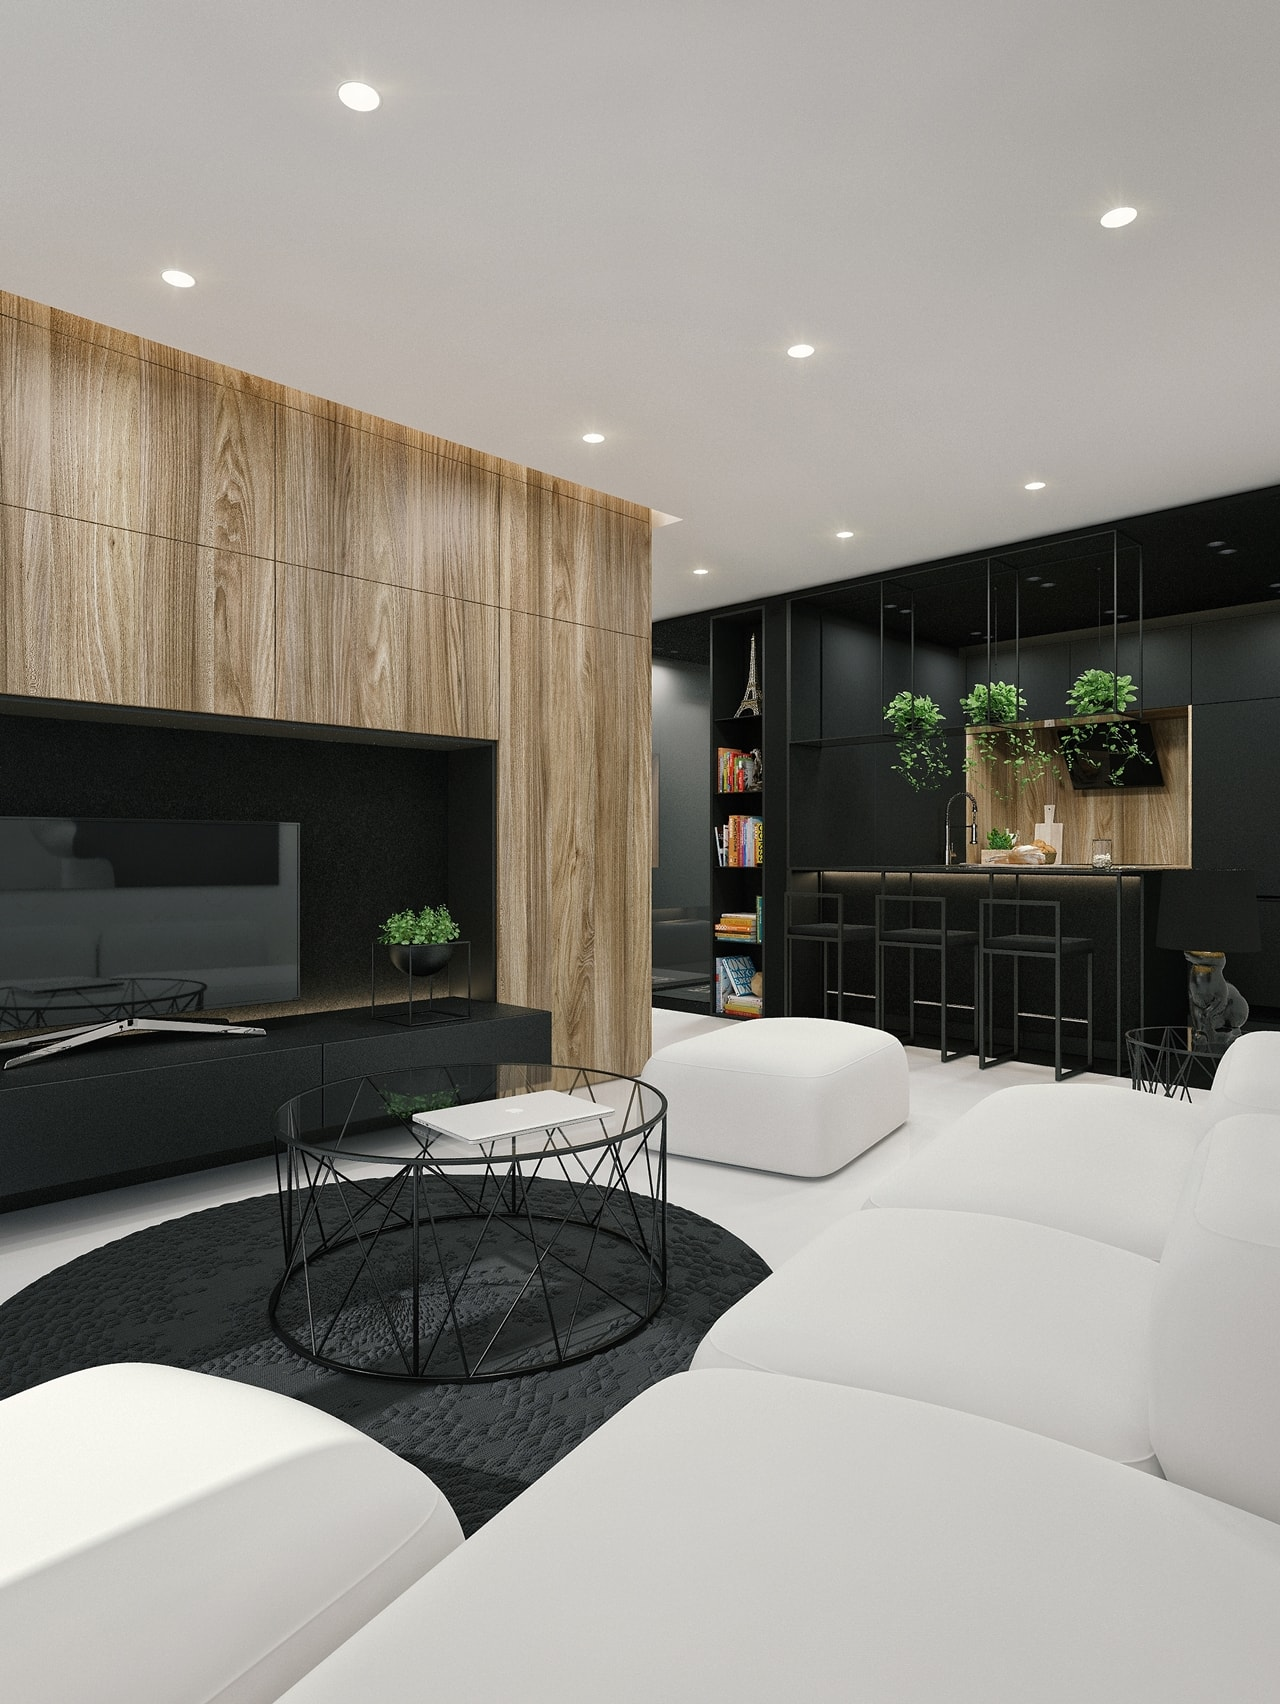 Black and white interior design ideas modern apartment by for Interior design in a box